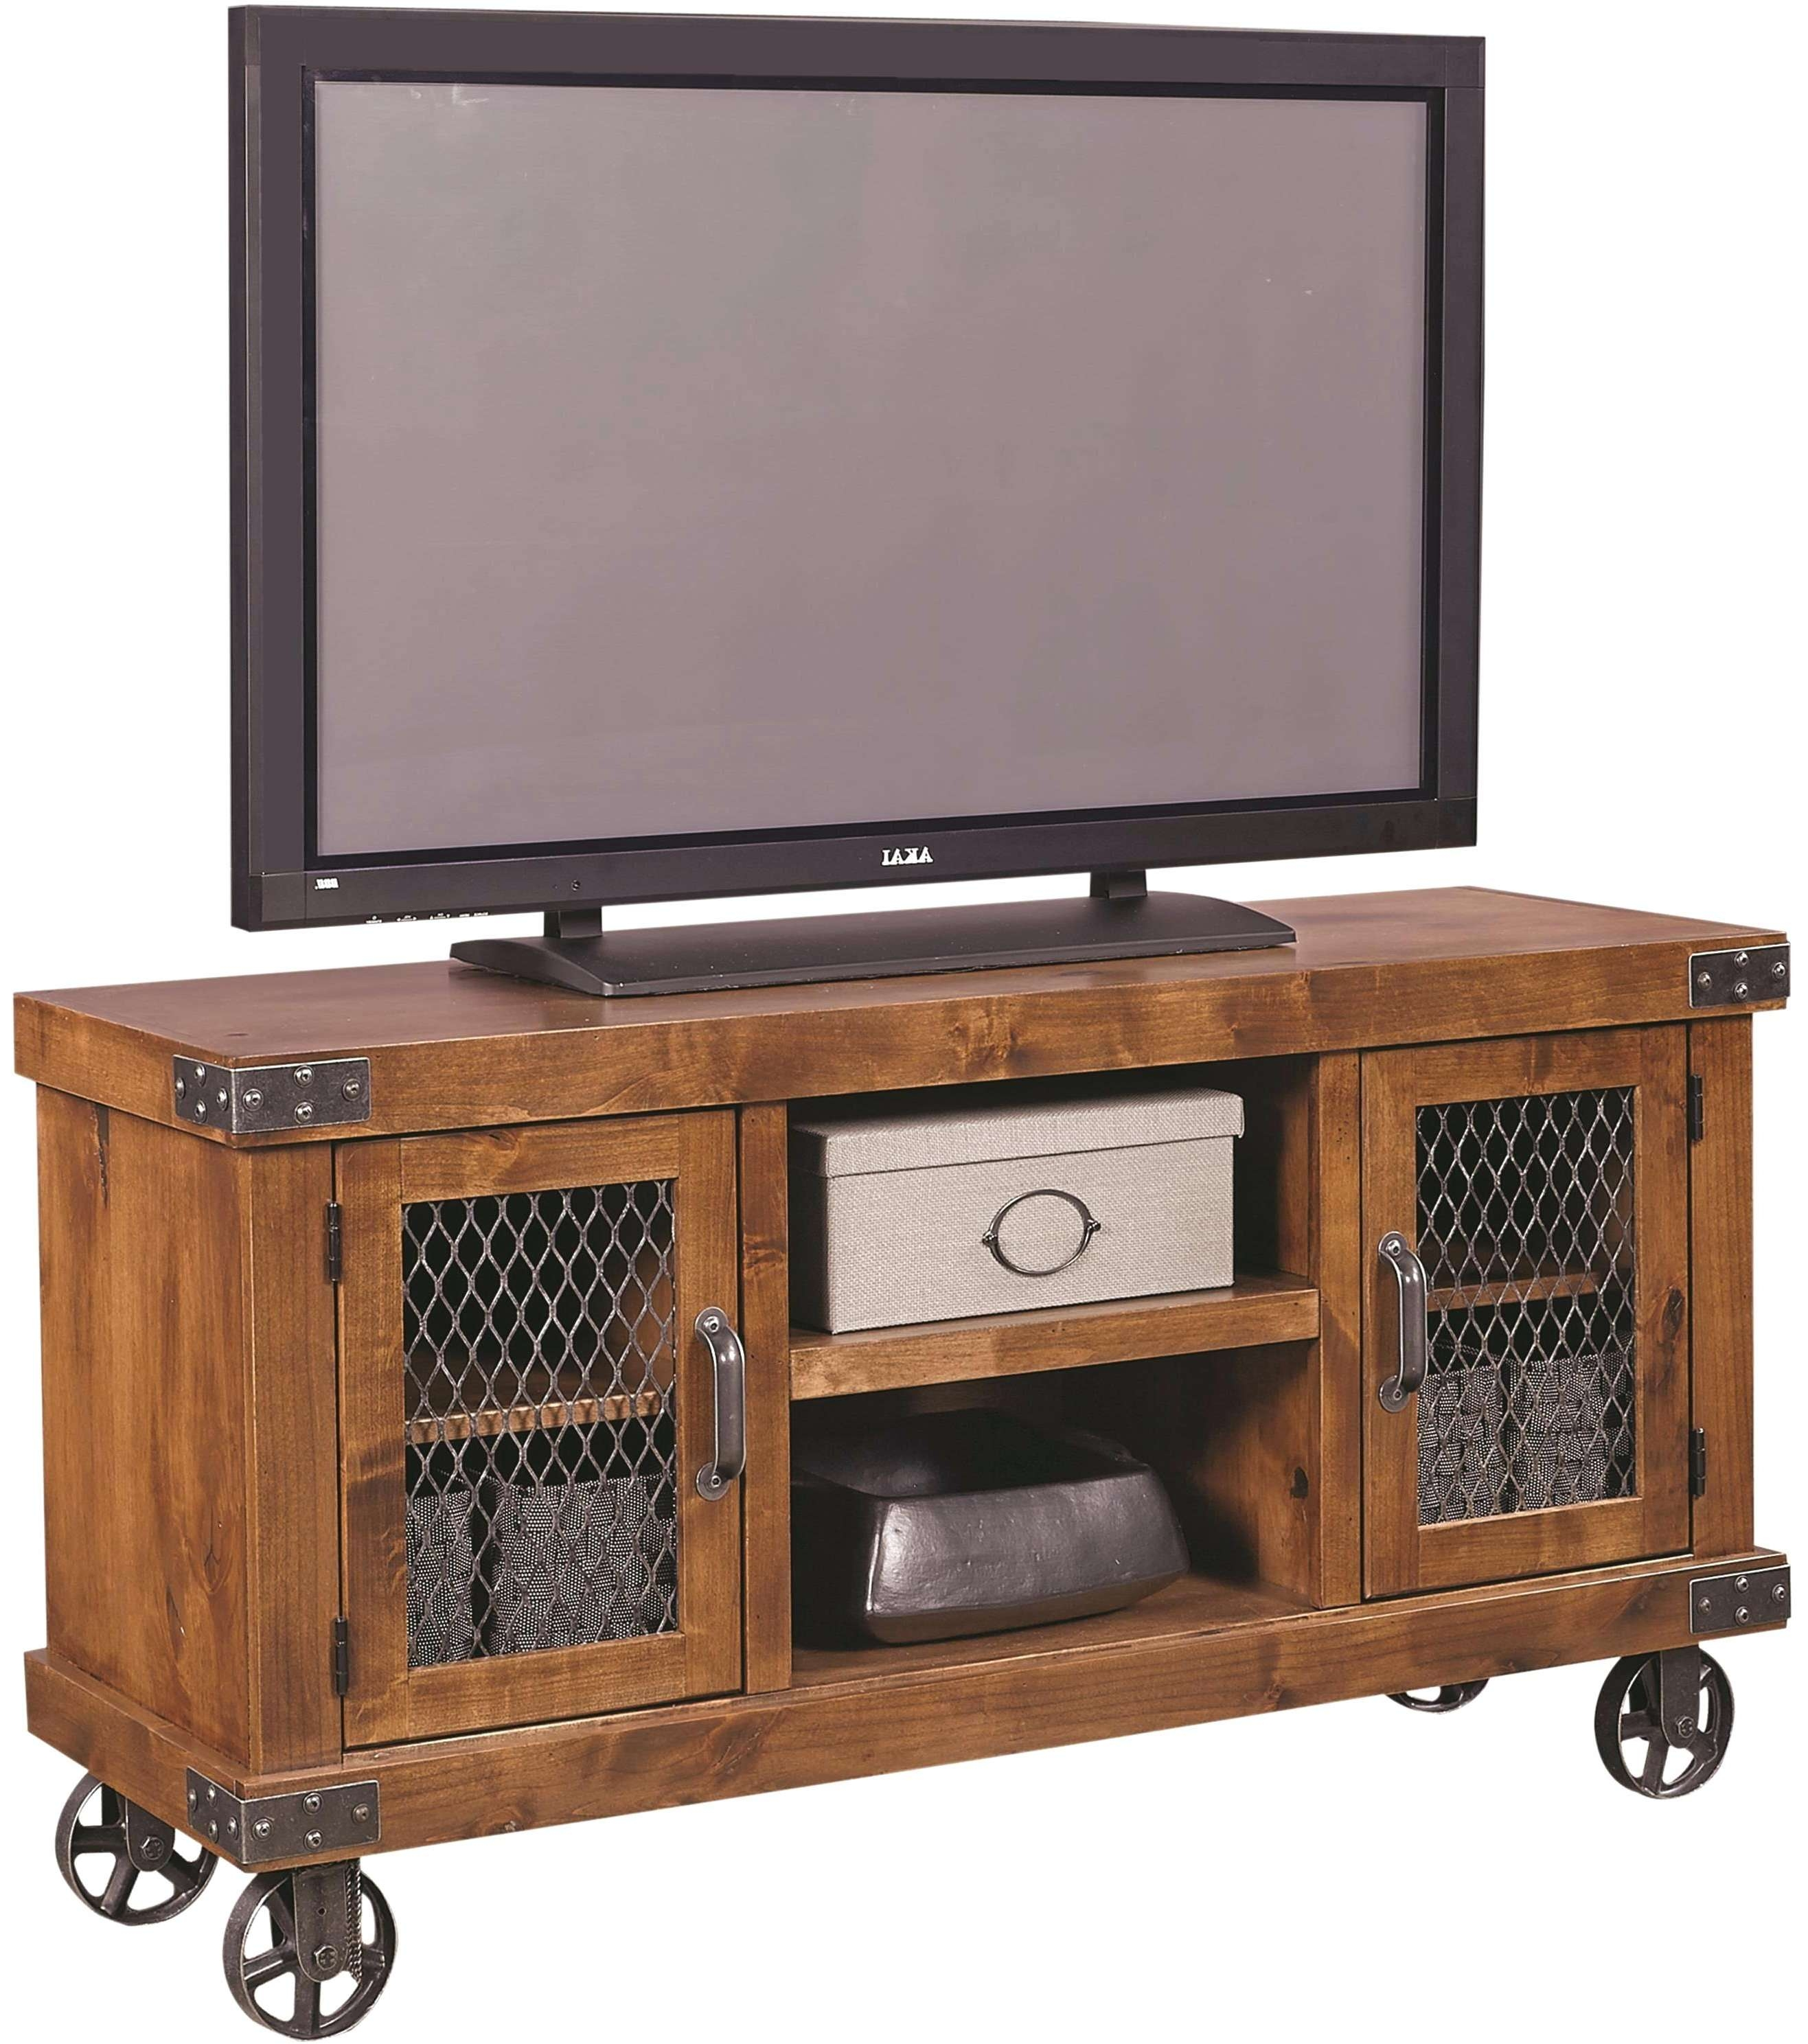 Tv Stand : Industrial Corner Tv Stand Cabinet Industrial Corner Tv With Regard To Industrial Corner Tv Stands (View 13 of 15)